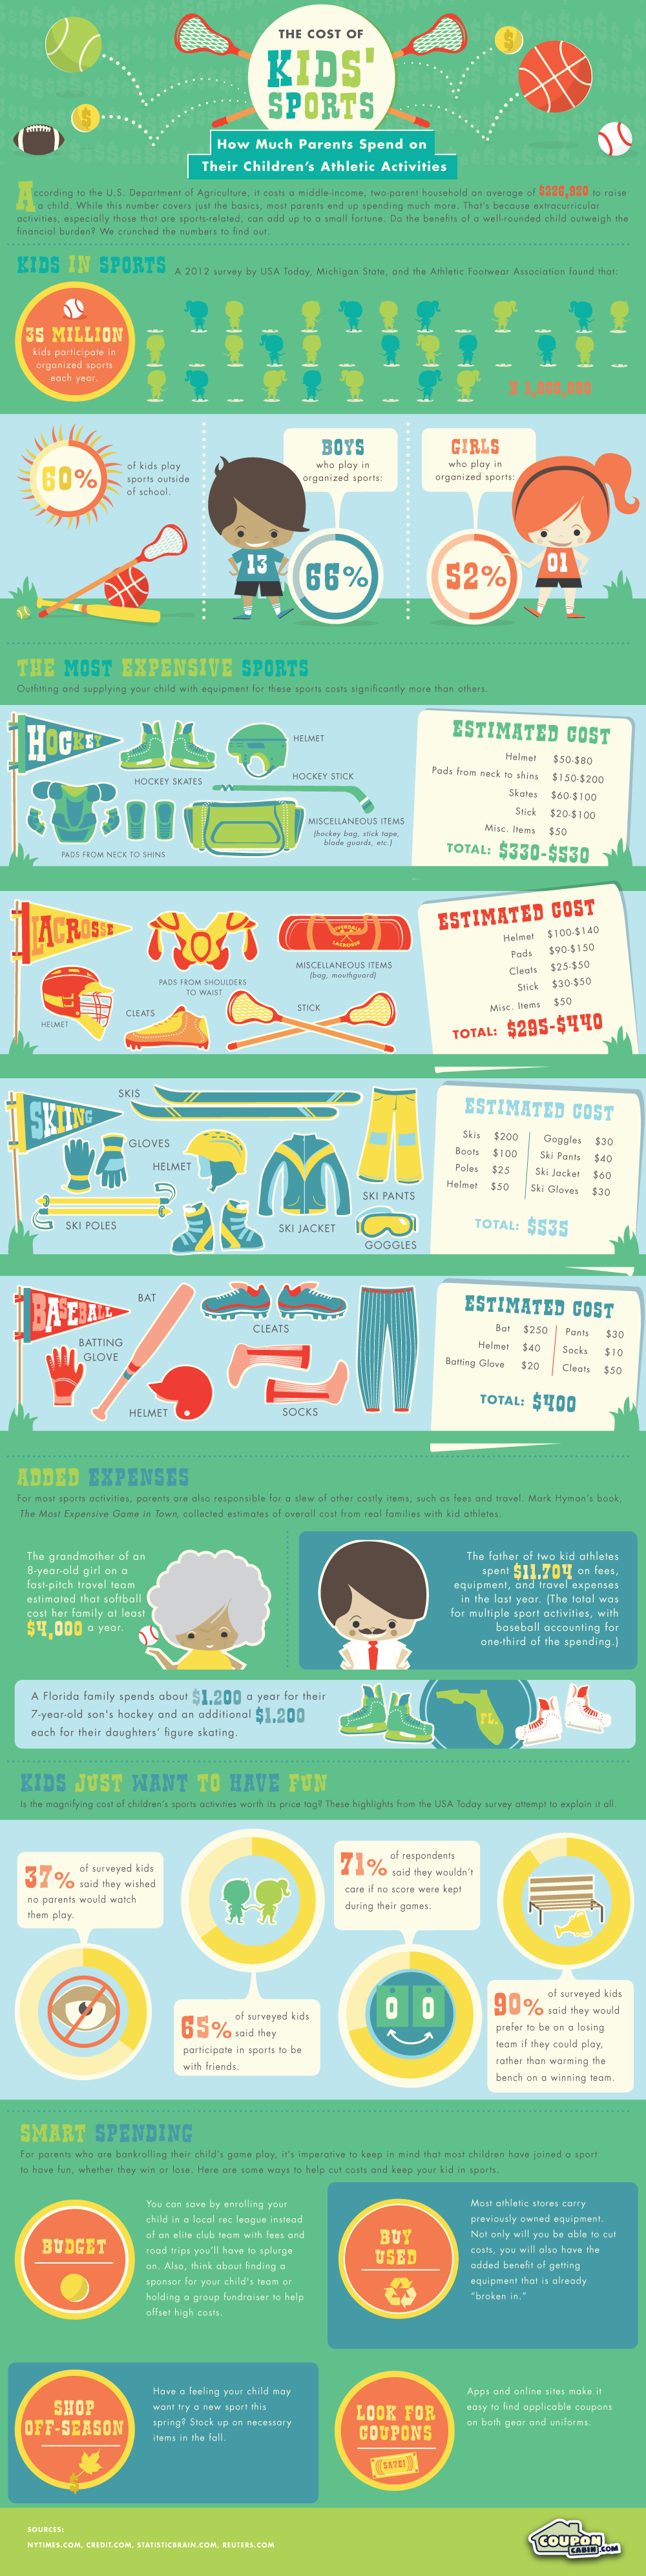 the-cost-of-kids-sports_5036555c818b7